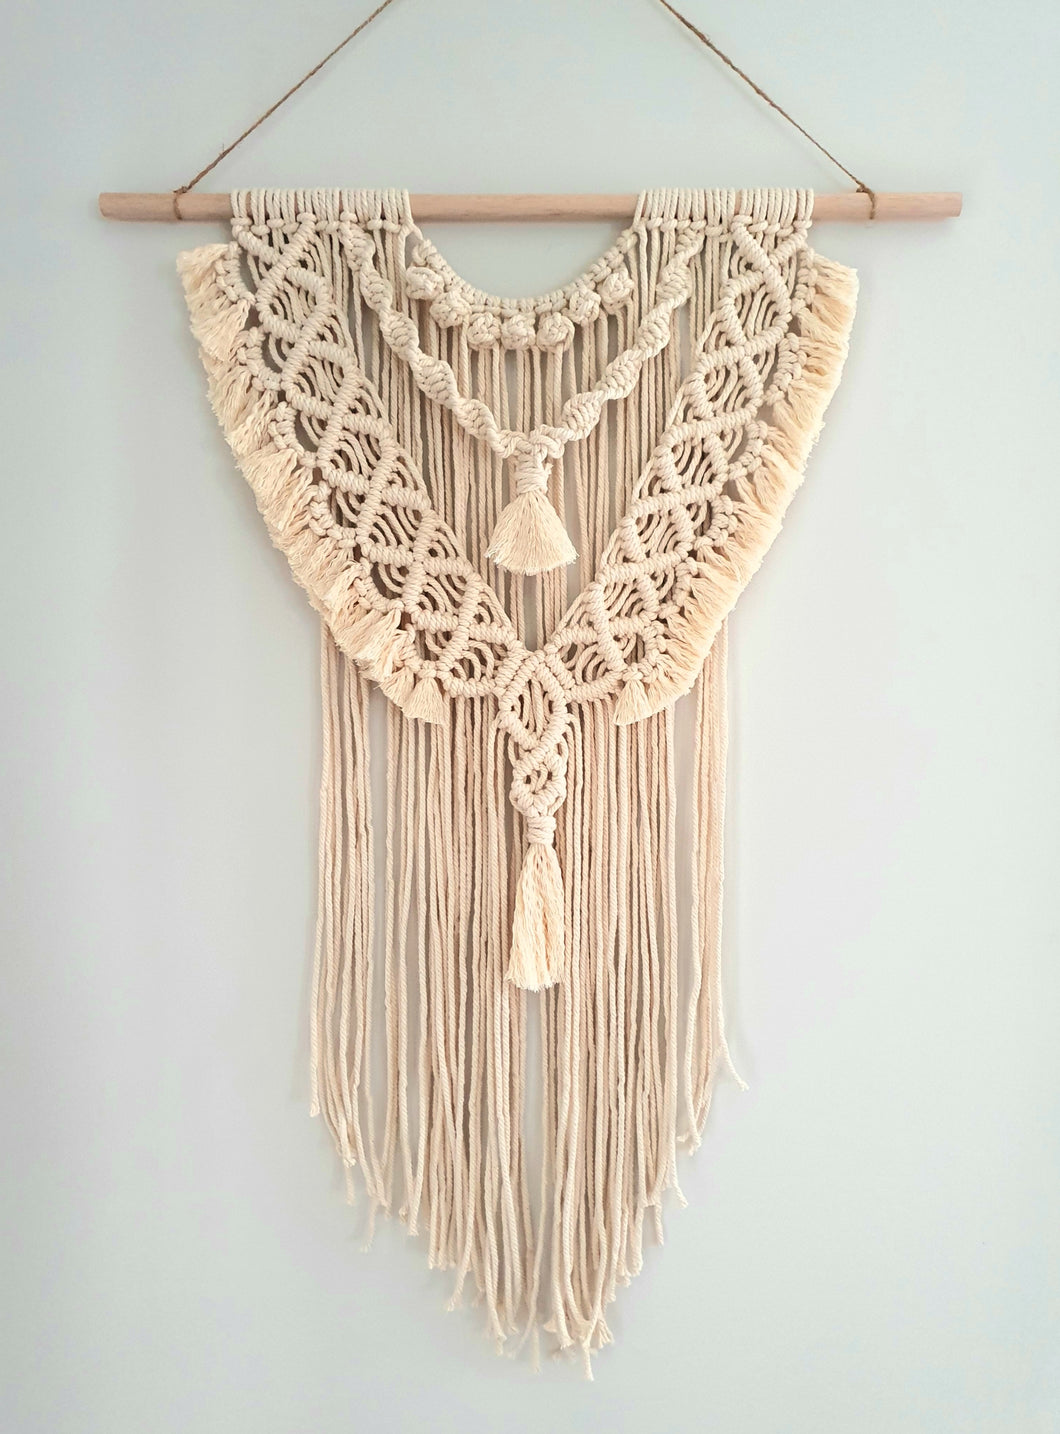 Macrame Beginners - Wall Hanging Workshop